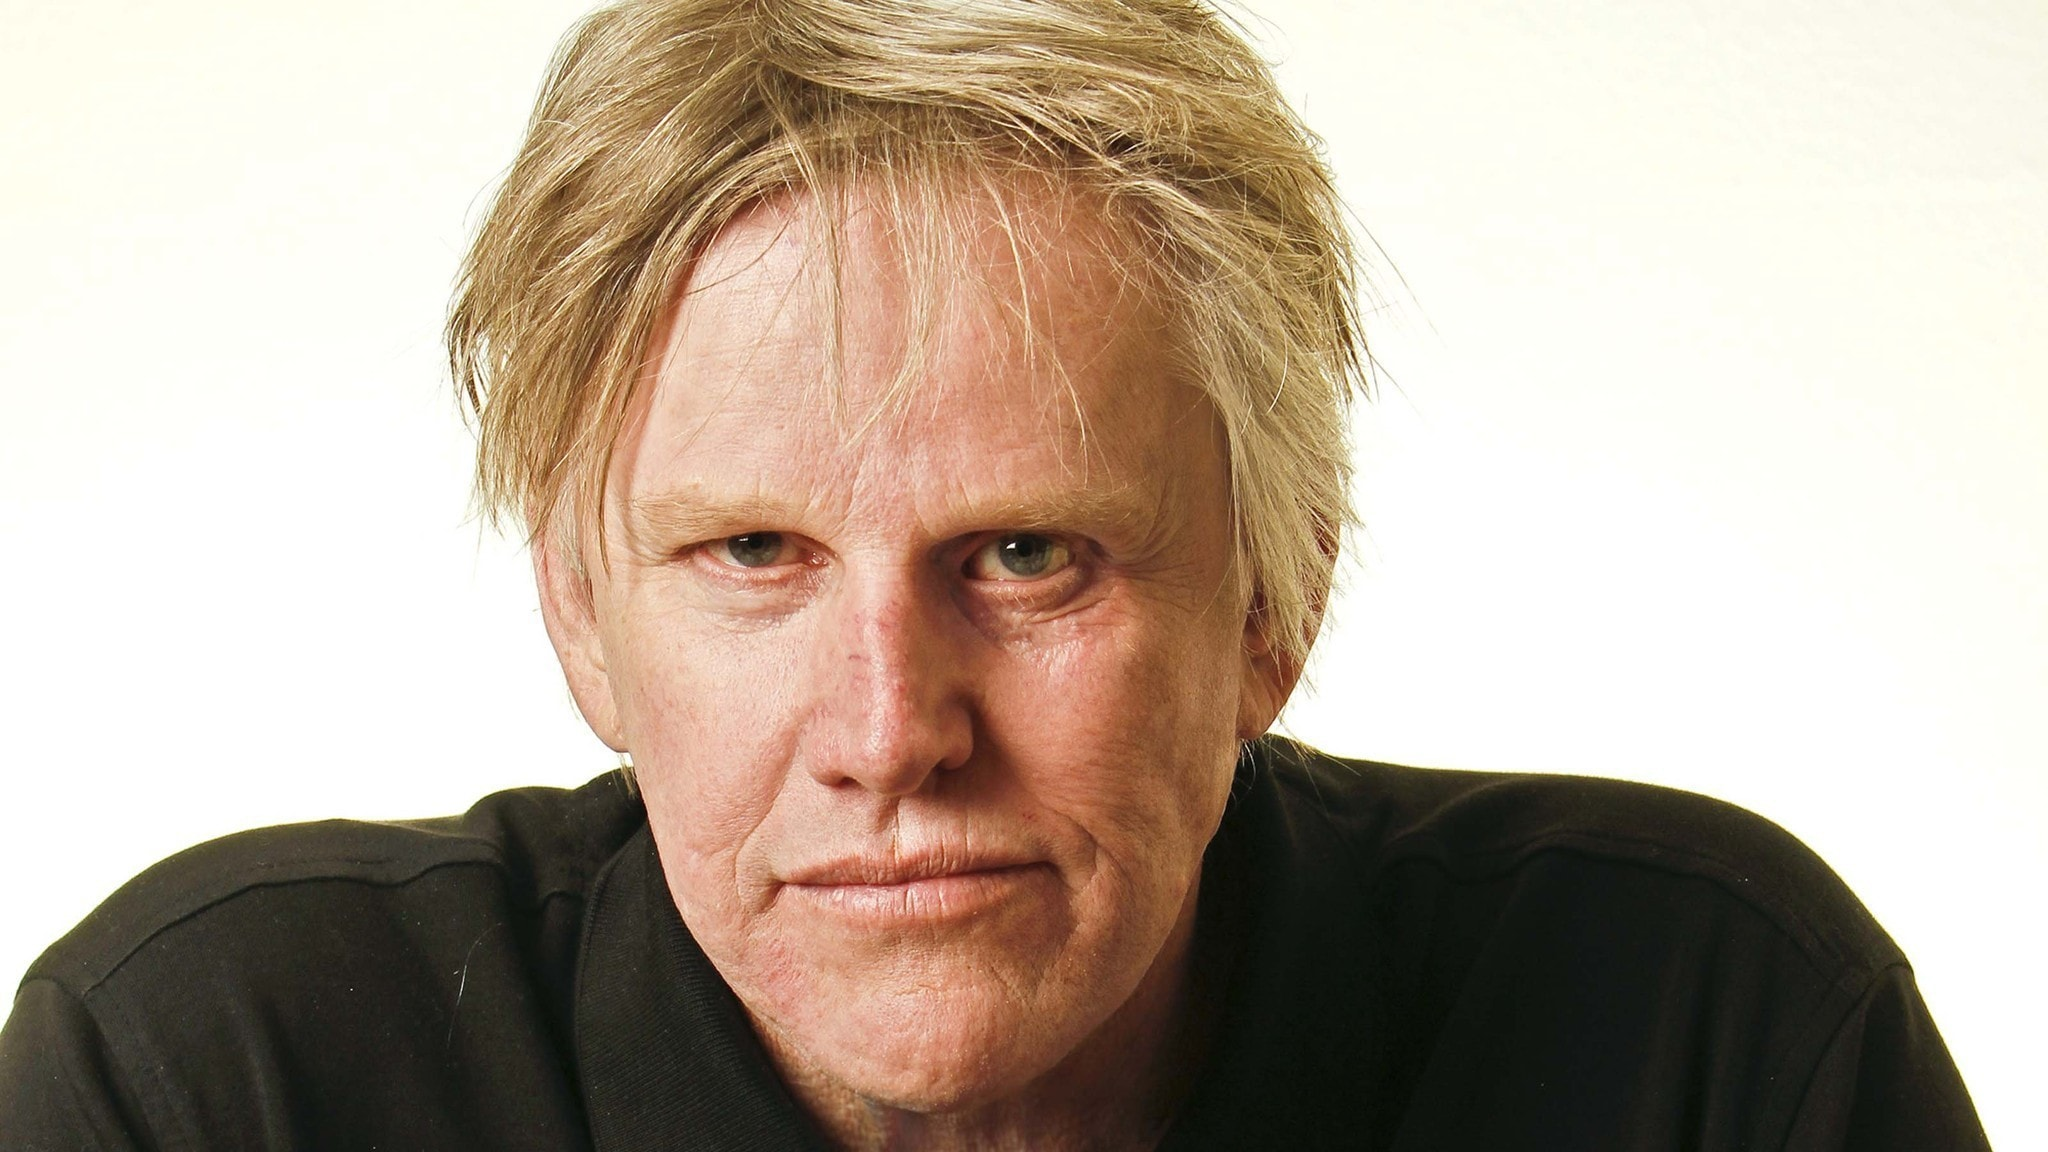 Gary Busey widescreen wallpapers